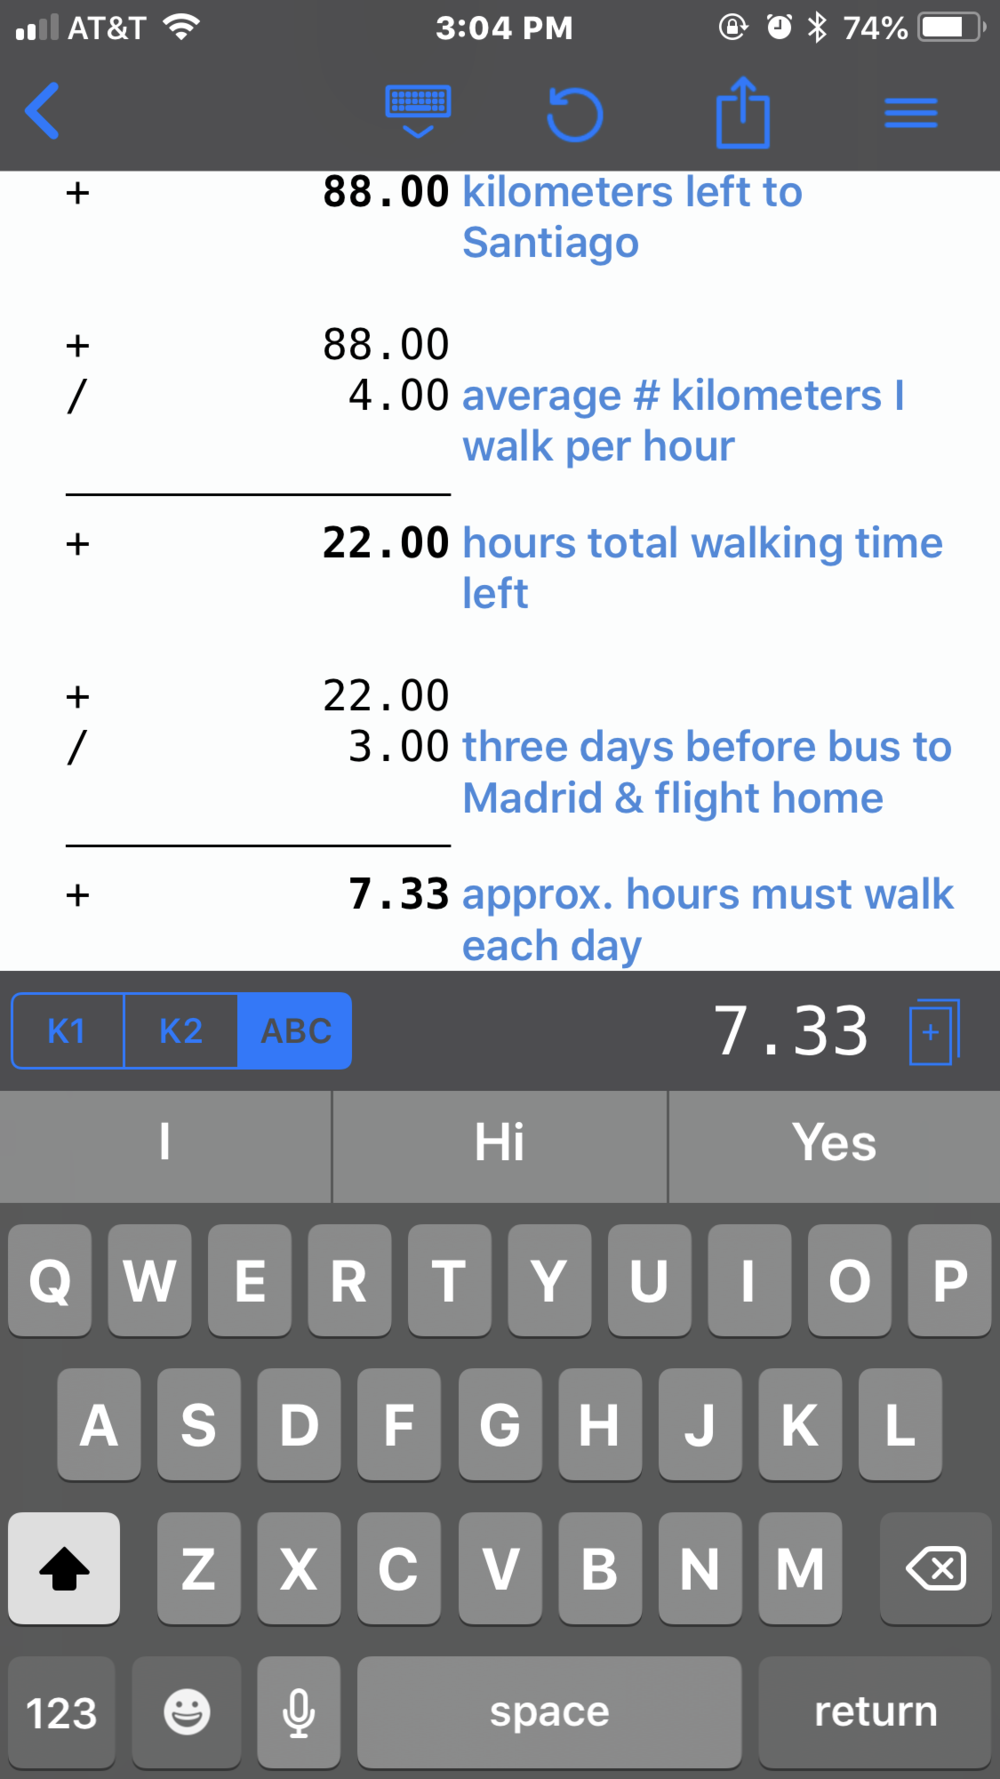 The text feature helps to keep track of calculations.